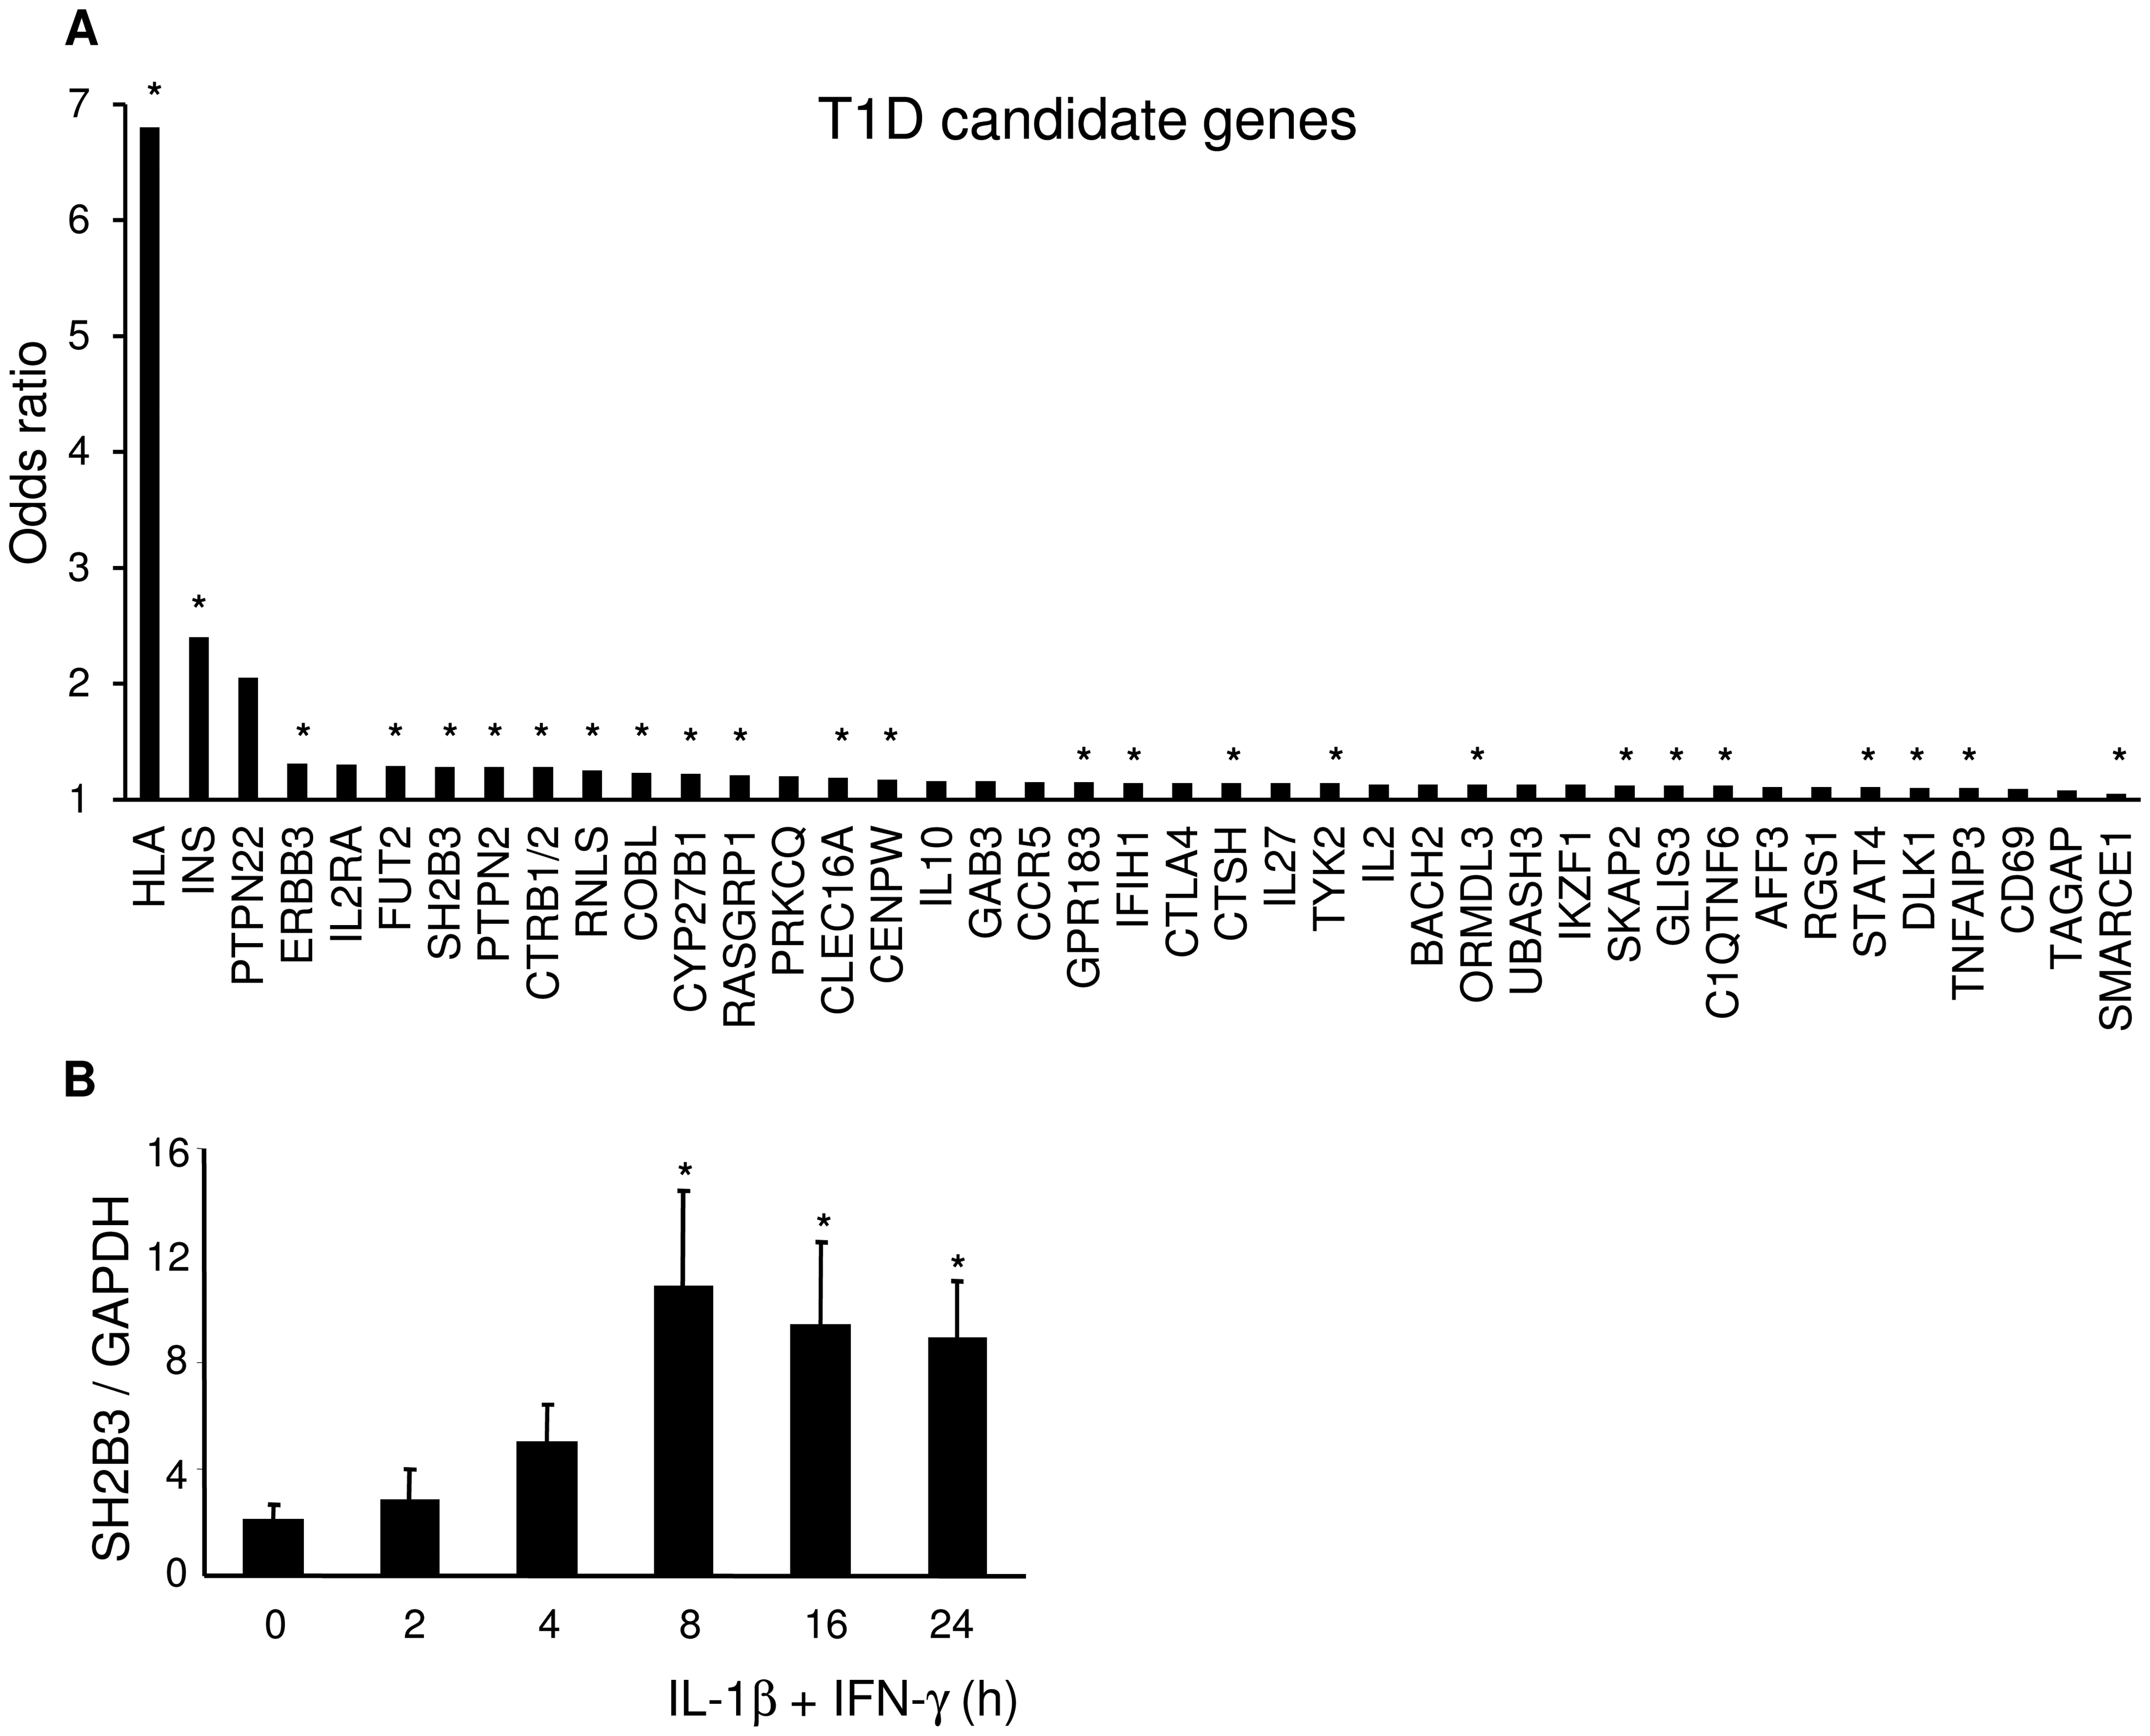 Two thirds of candidate genes for T1D are expressed in pancreatic beta cells.